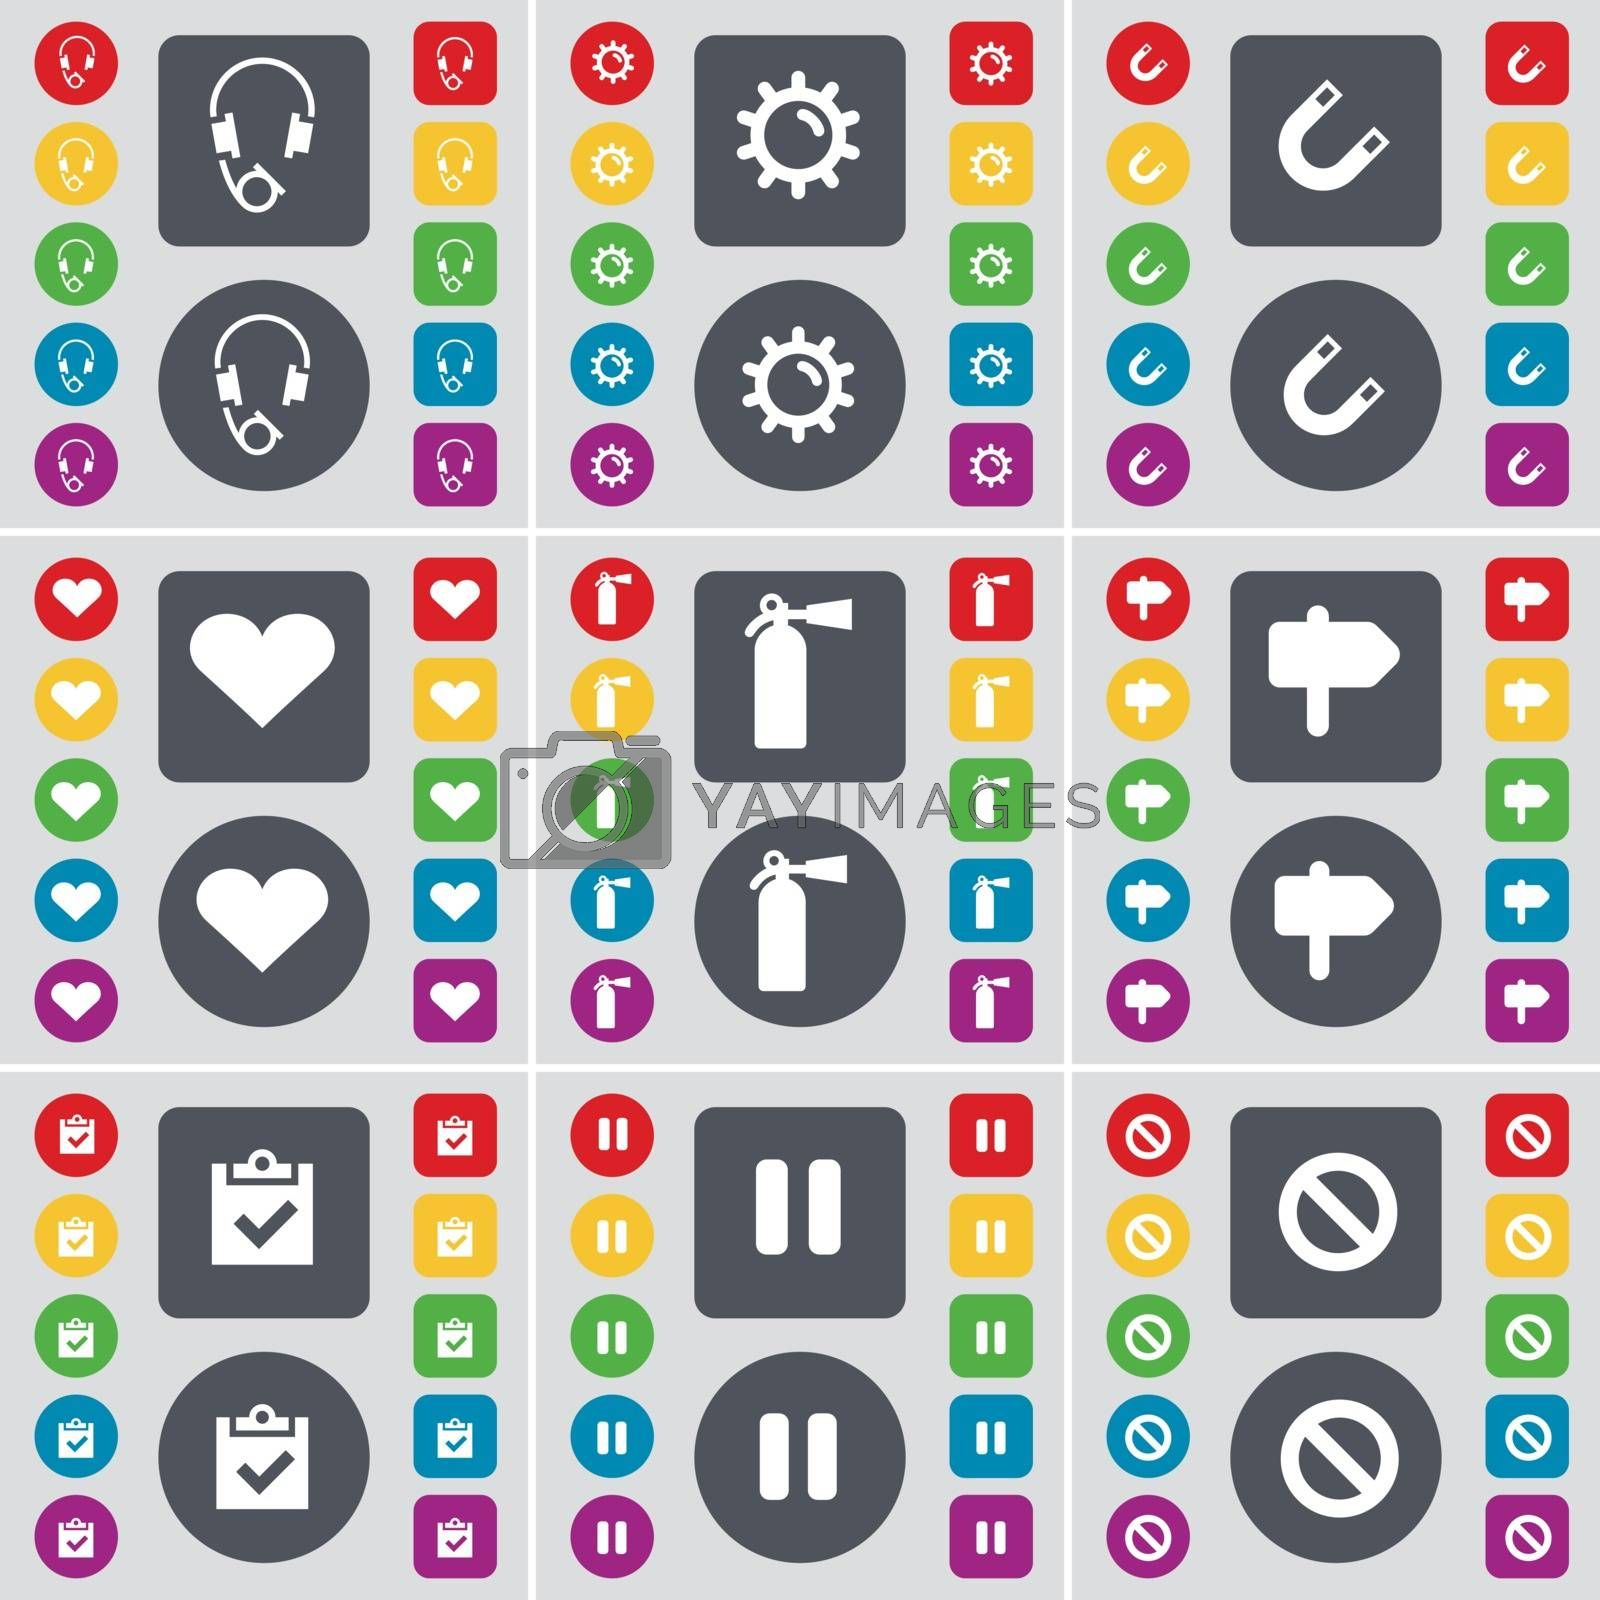 Royalty free image of Headphones, Gear, Magnet, Heart, Fire extinguisher, Signpost, Survey, Pause, Stop icon symbol. A large set of flat, colored buttons for your design. Vector by serhii_lohvyniuk